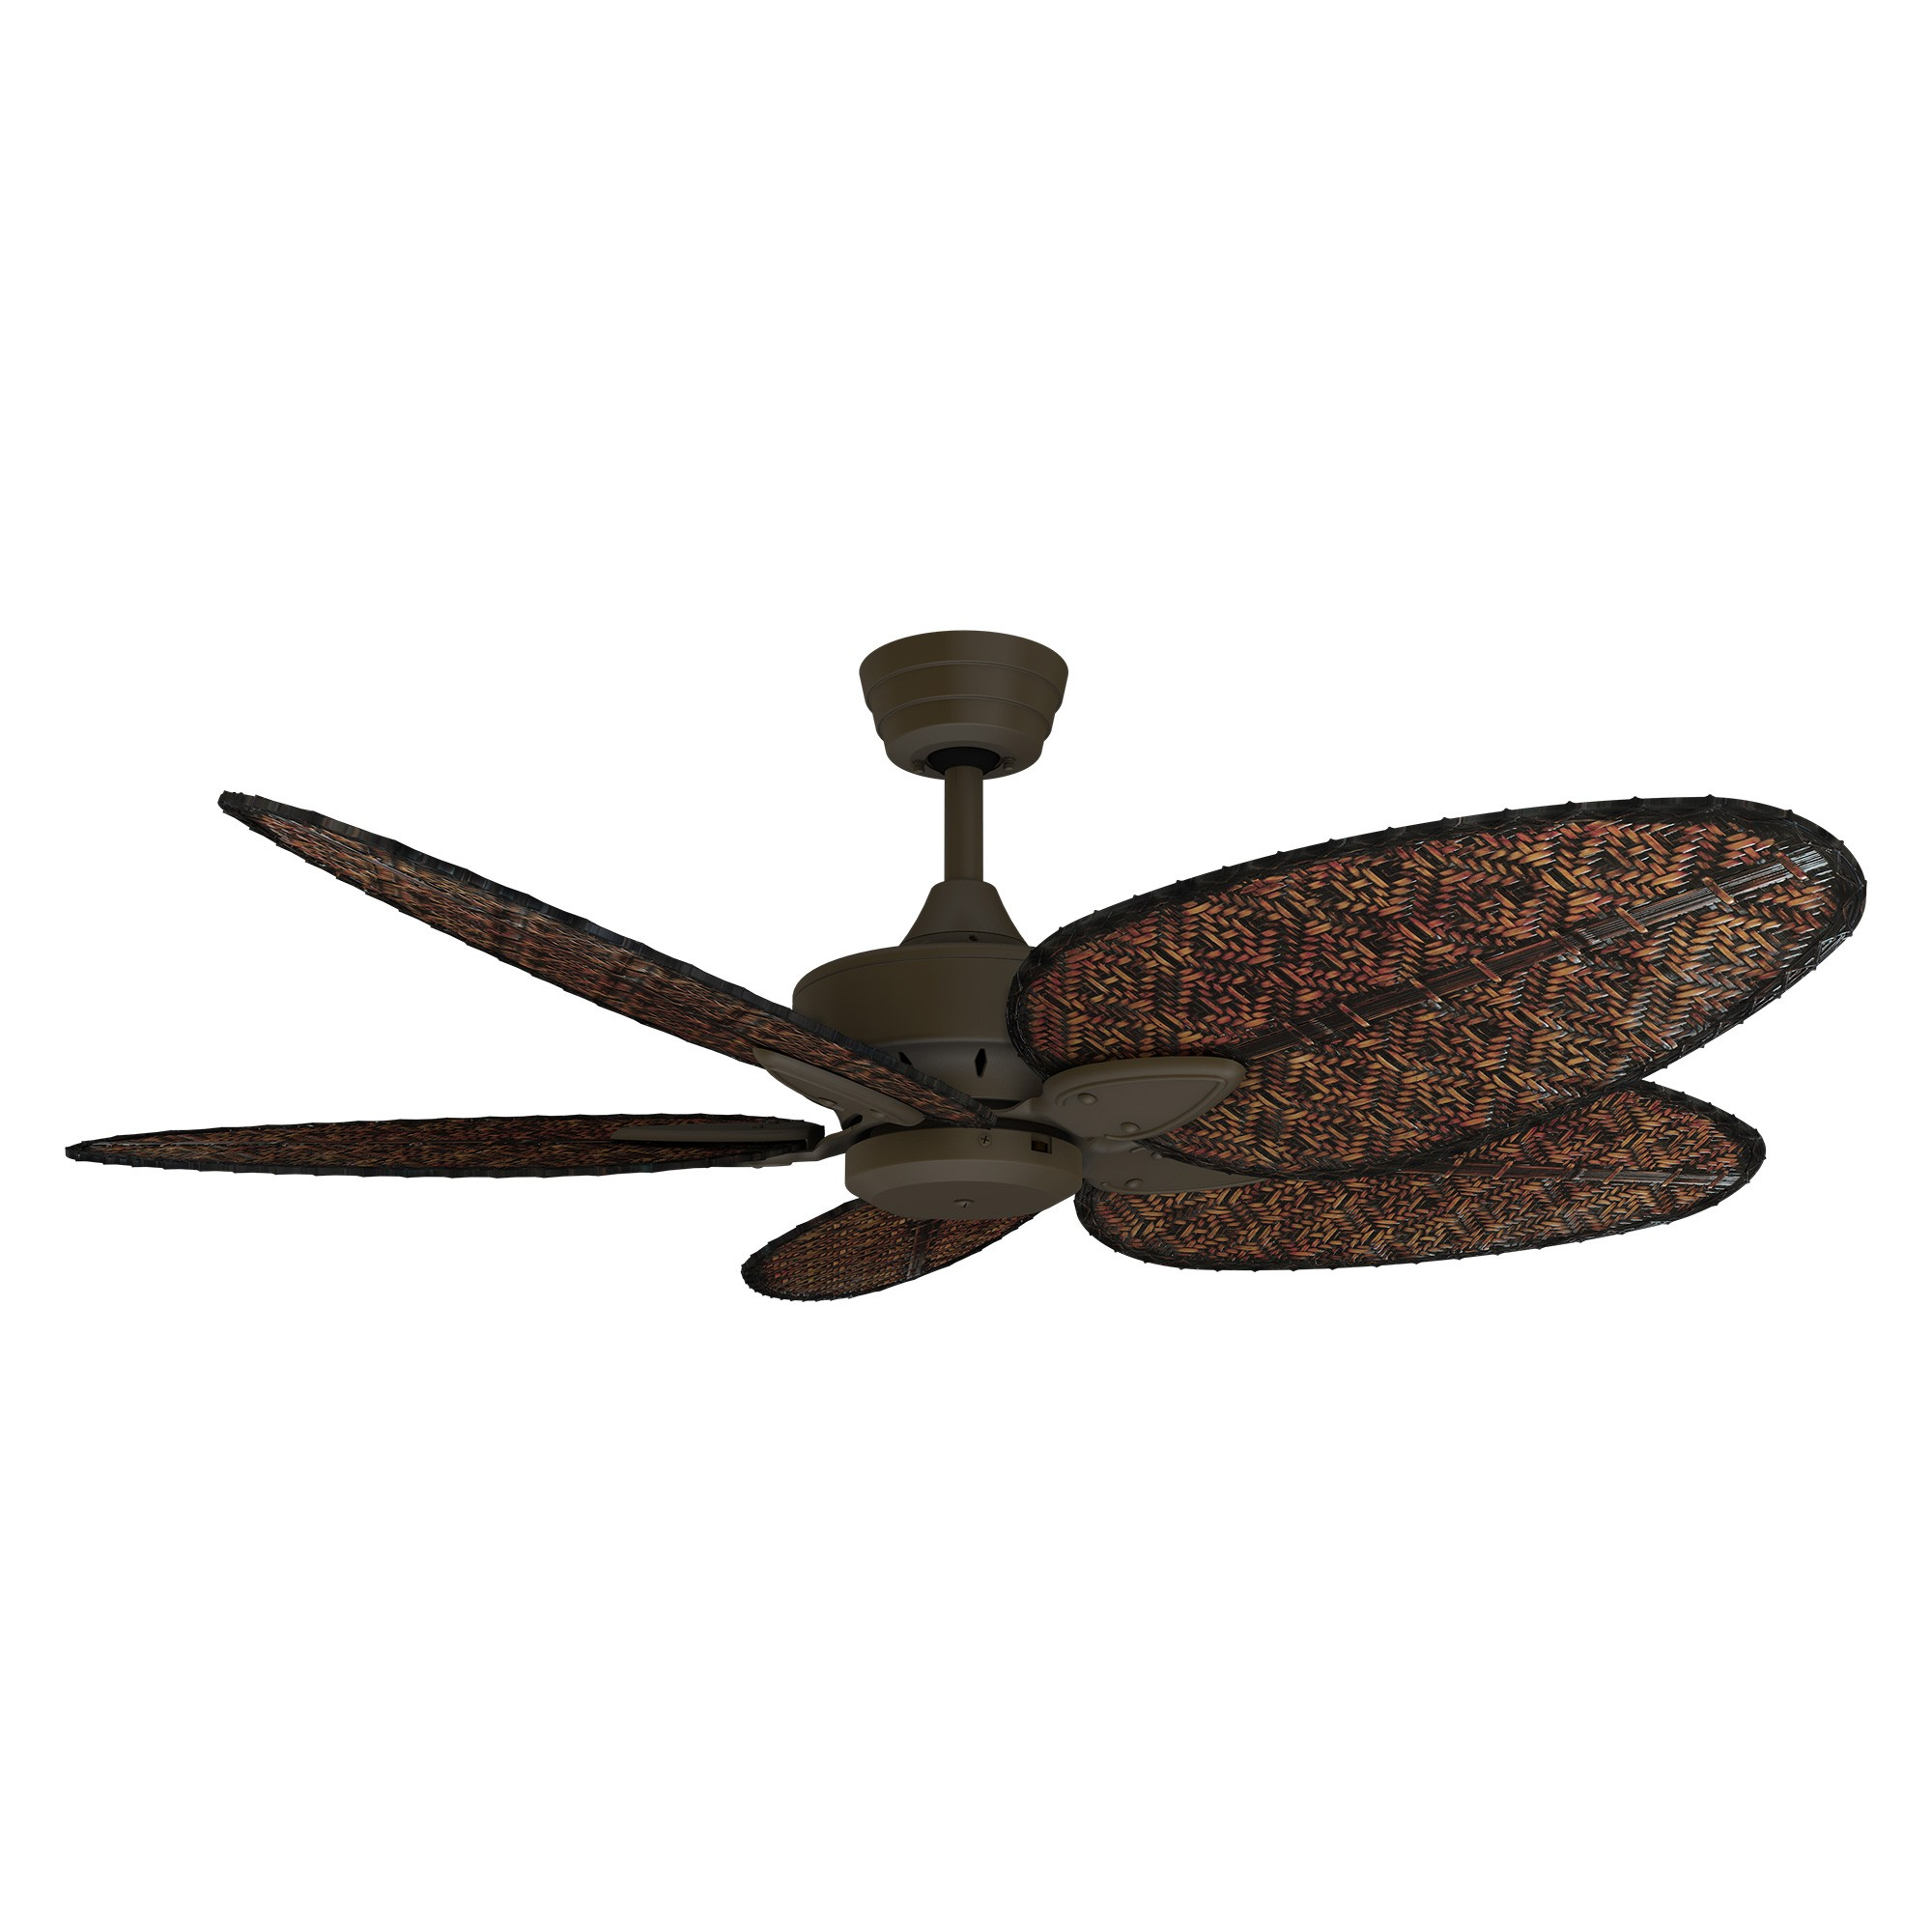 Fanimation Windpoint Ceiling Fan, 132cm/52